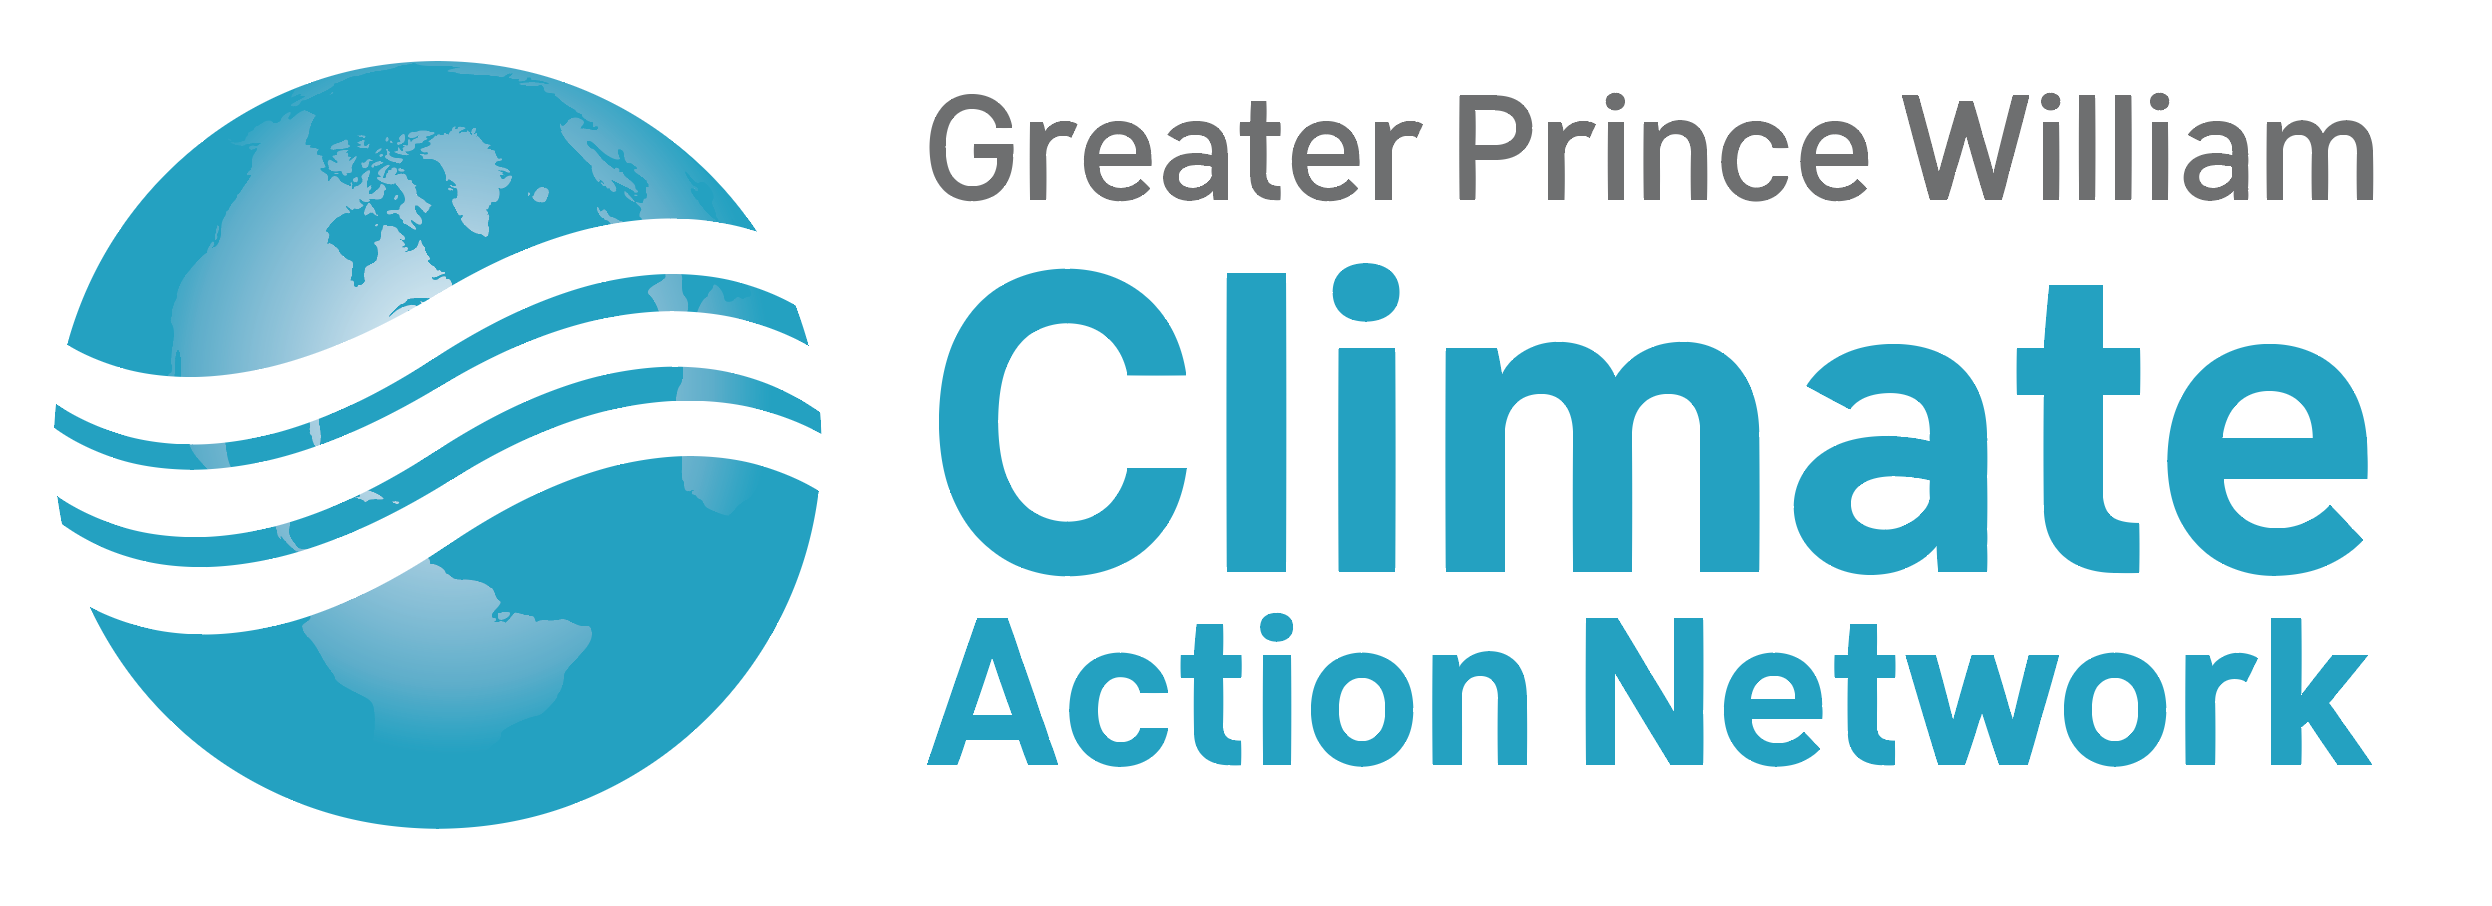 Greater Prince William Climate Action Network.png